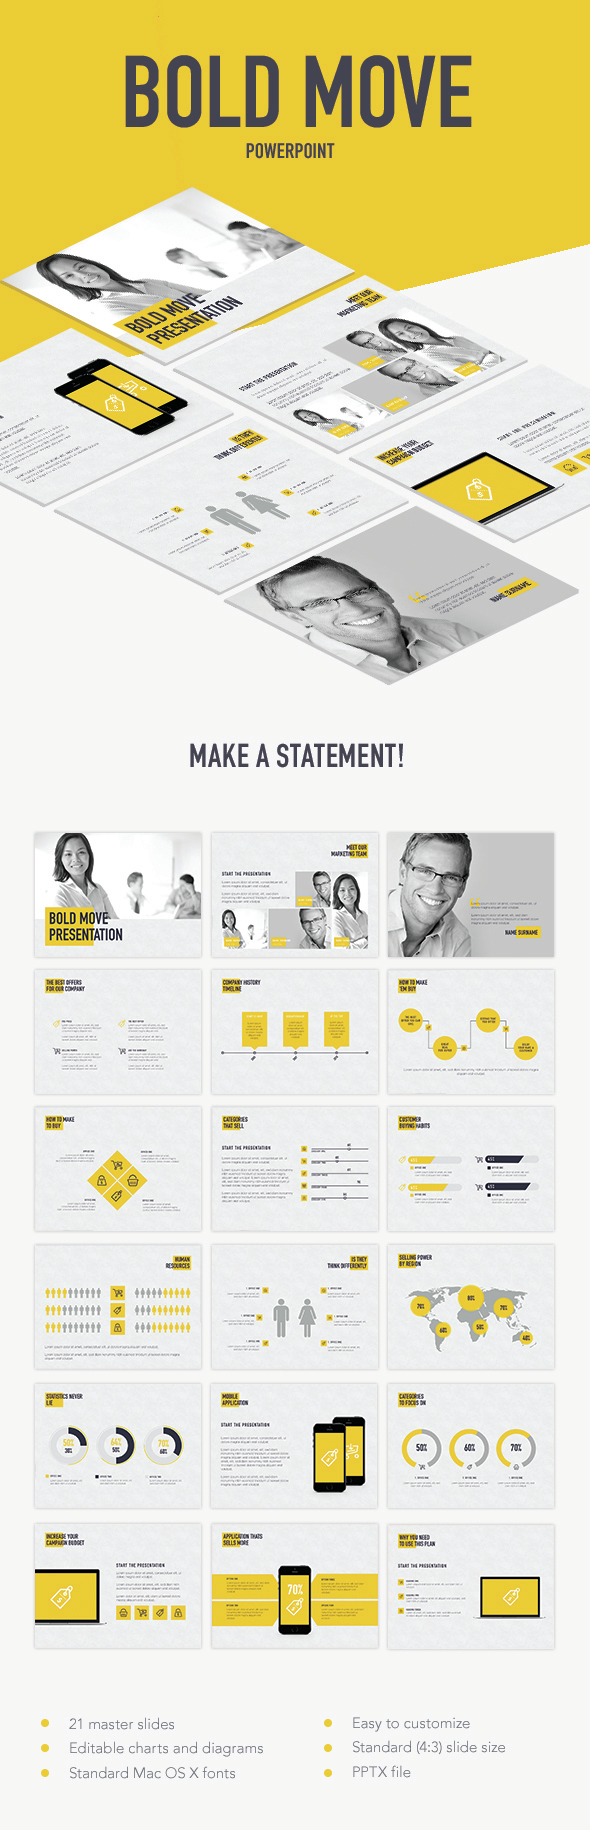 Bold move powerpoint template by jumsoft graphicriver bold move powerpoint template business powerpoint templates toneelgroepblik Images